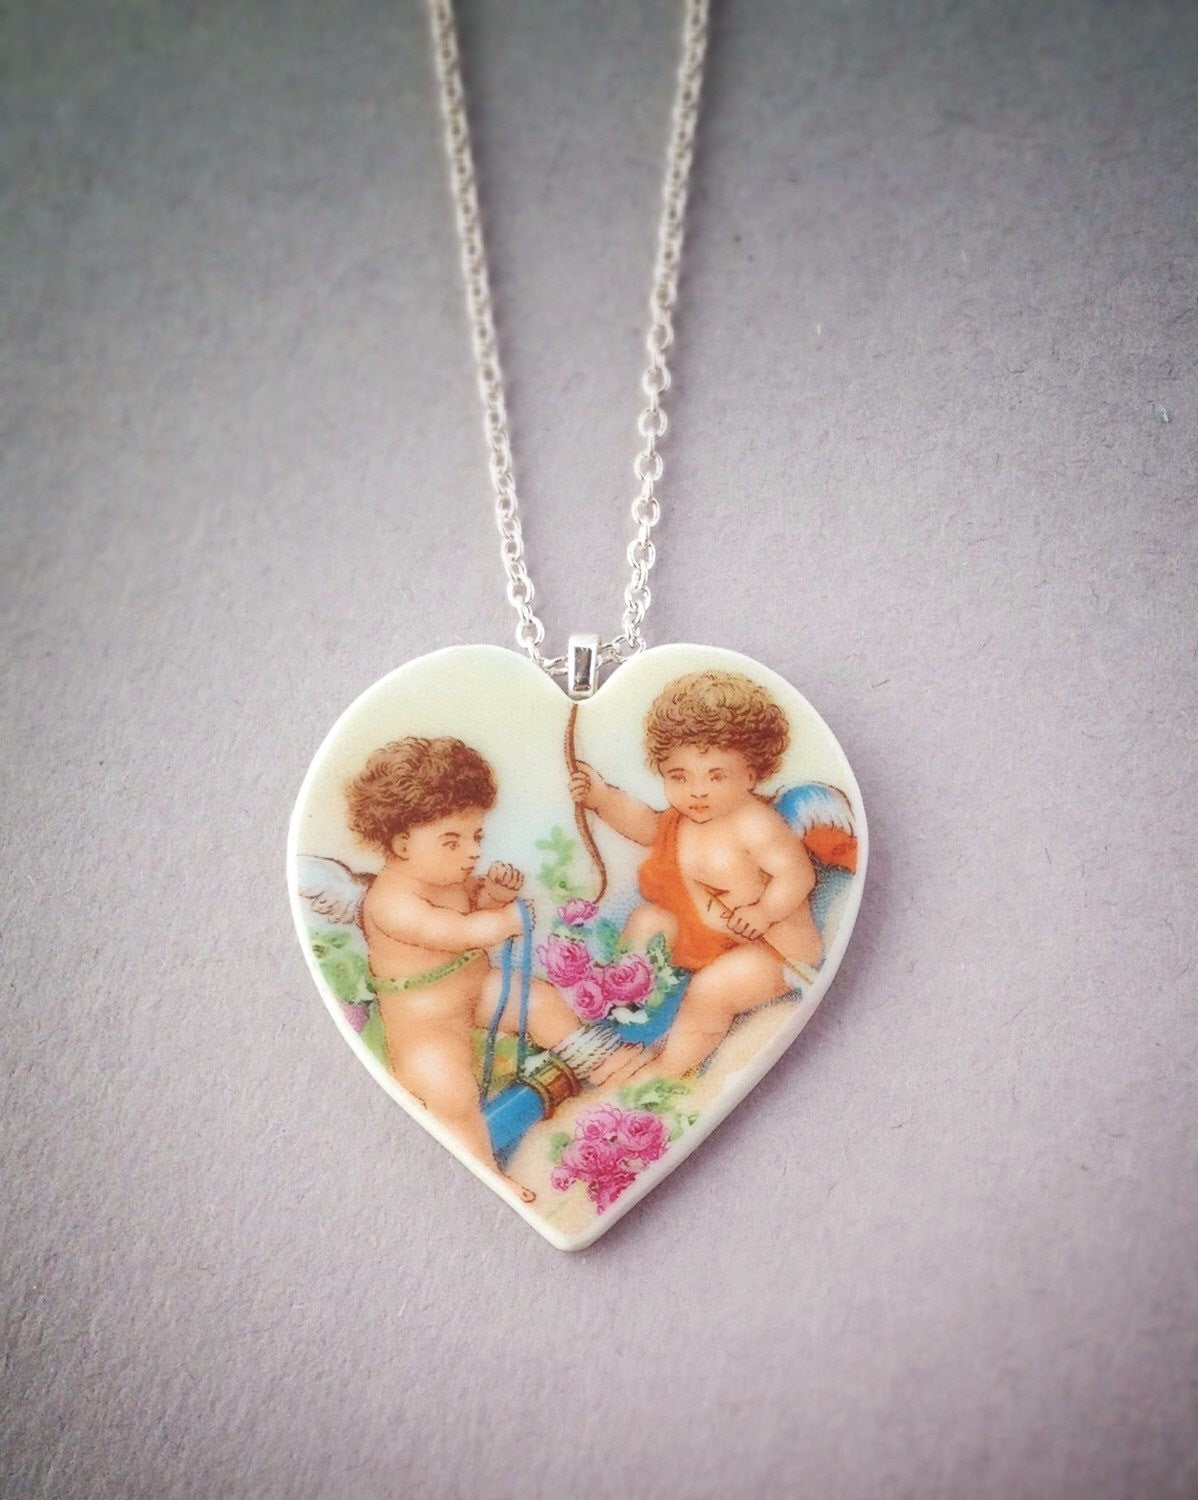 Cupid necklace - heart necklace